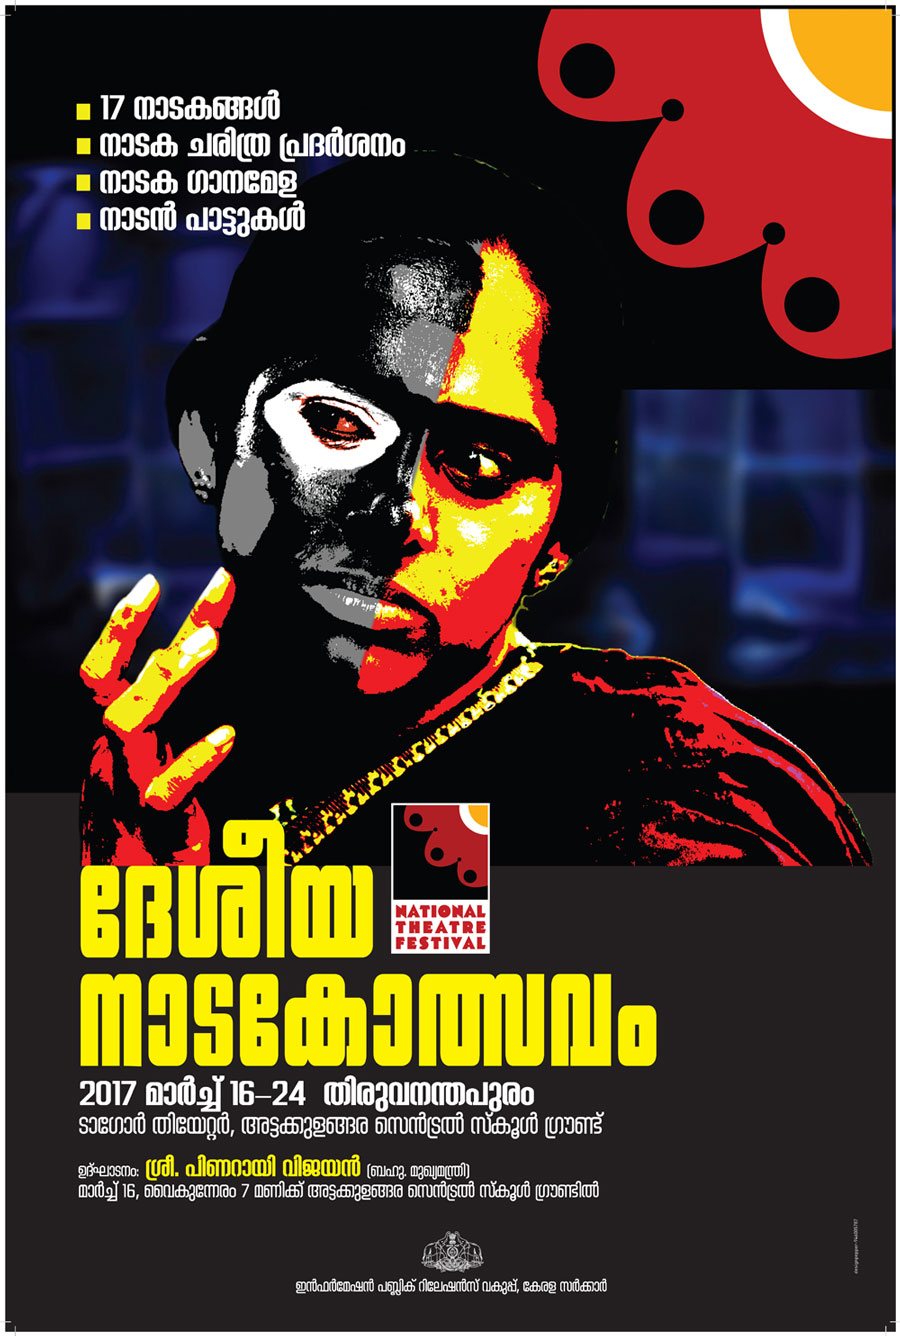 PRD National Theatre Festival To Begin From March 16 At Tvm